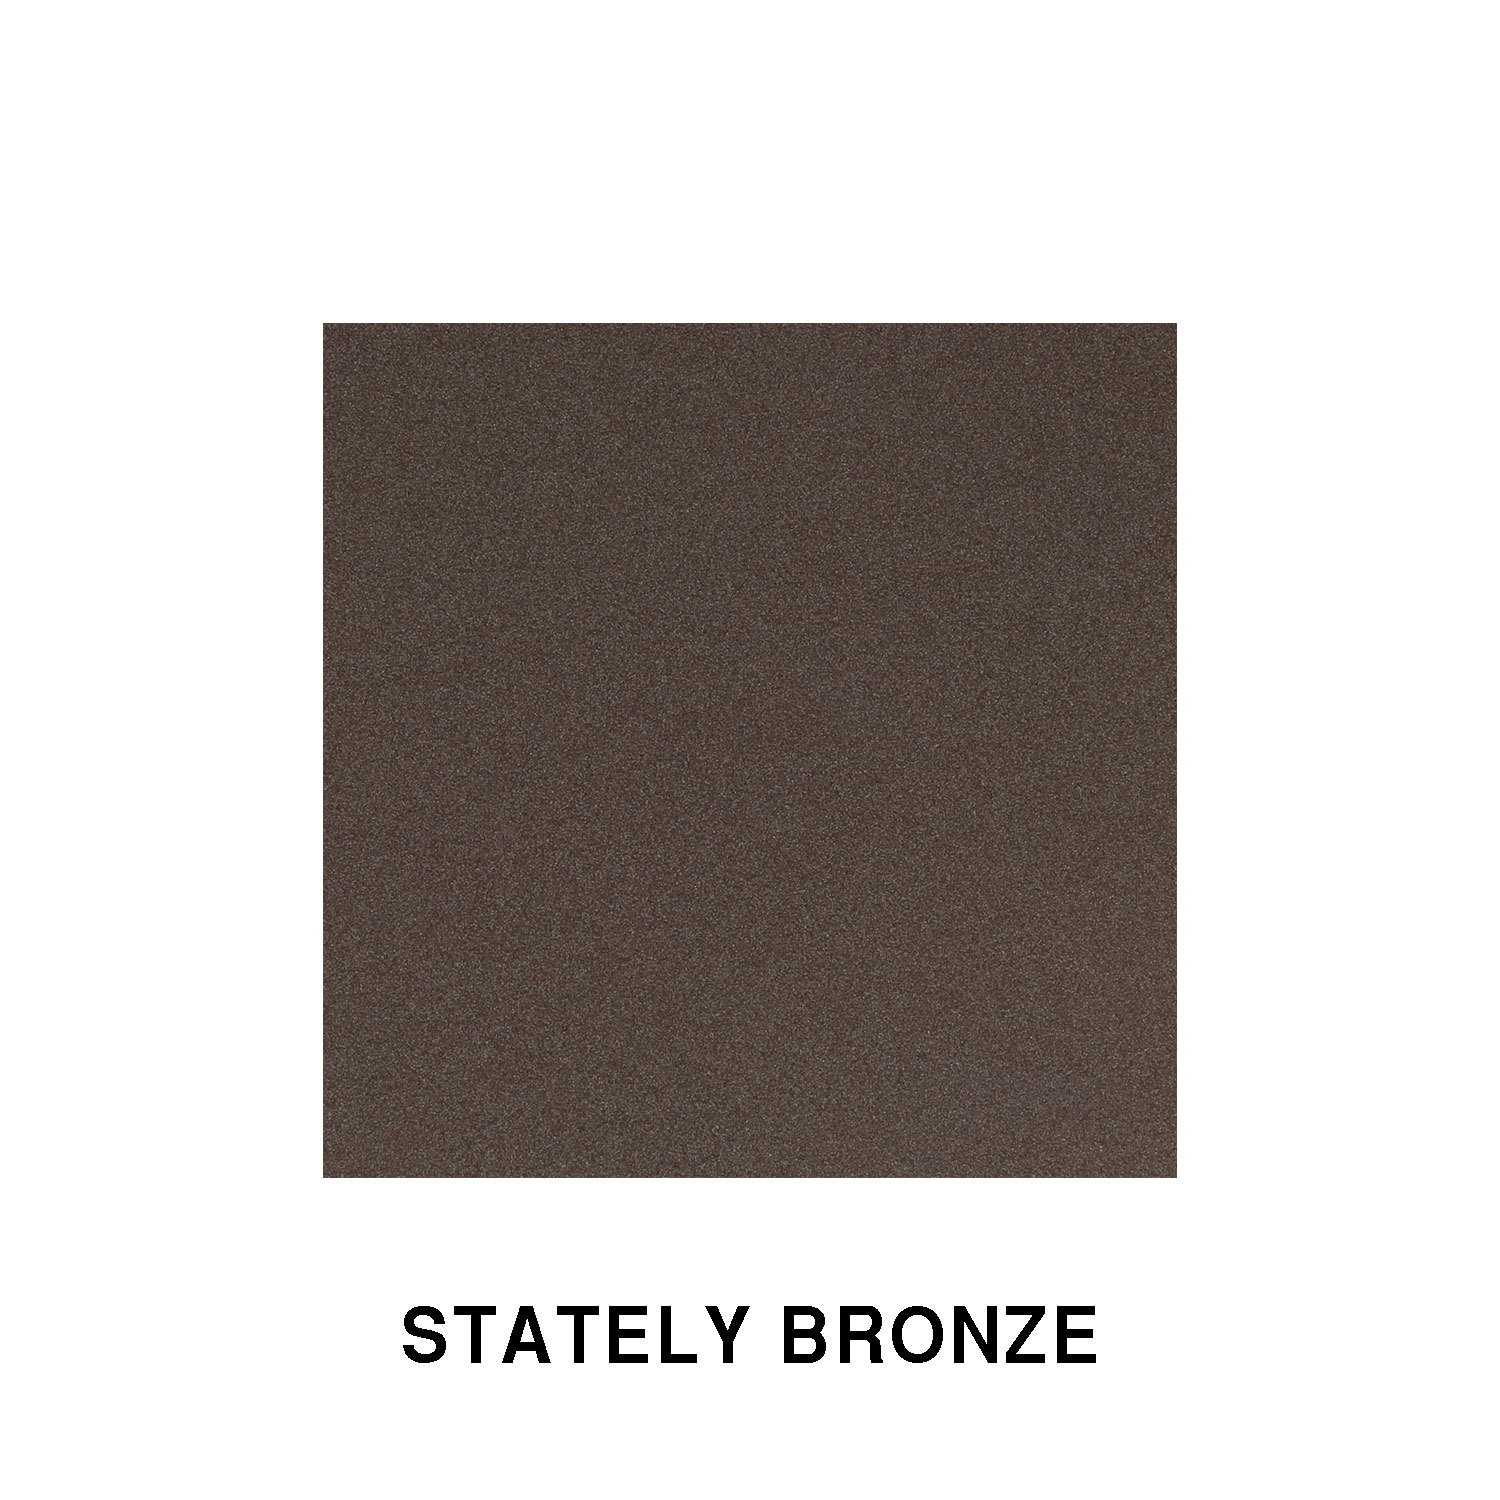 Stately Bronze Fiberglass Finish